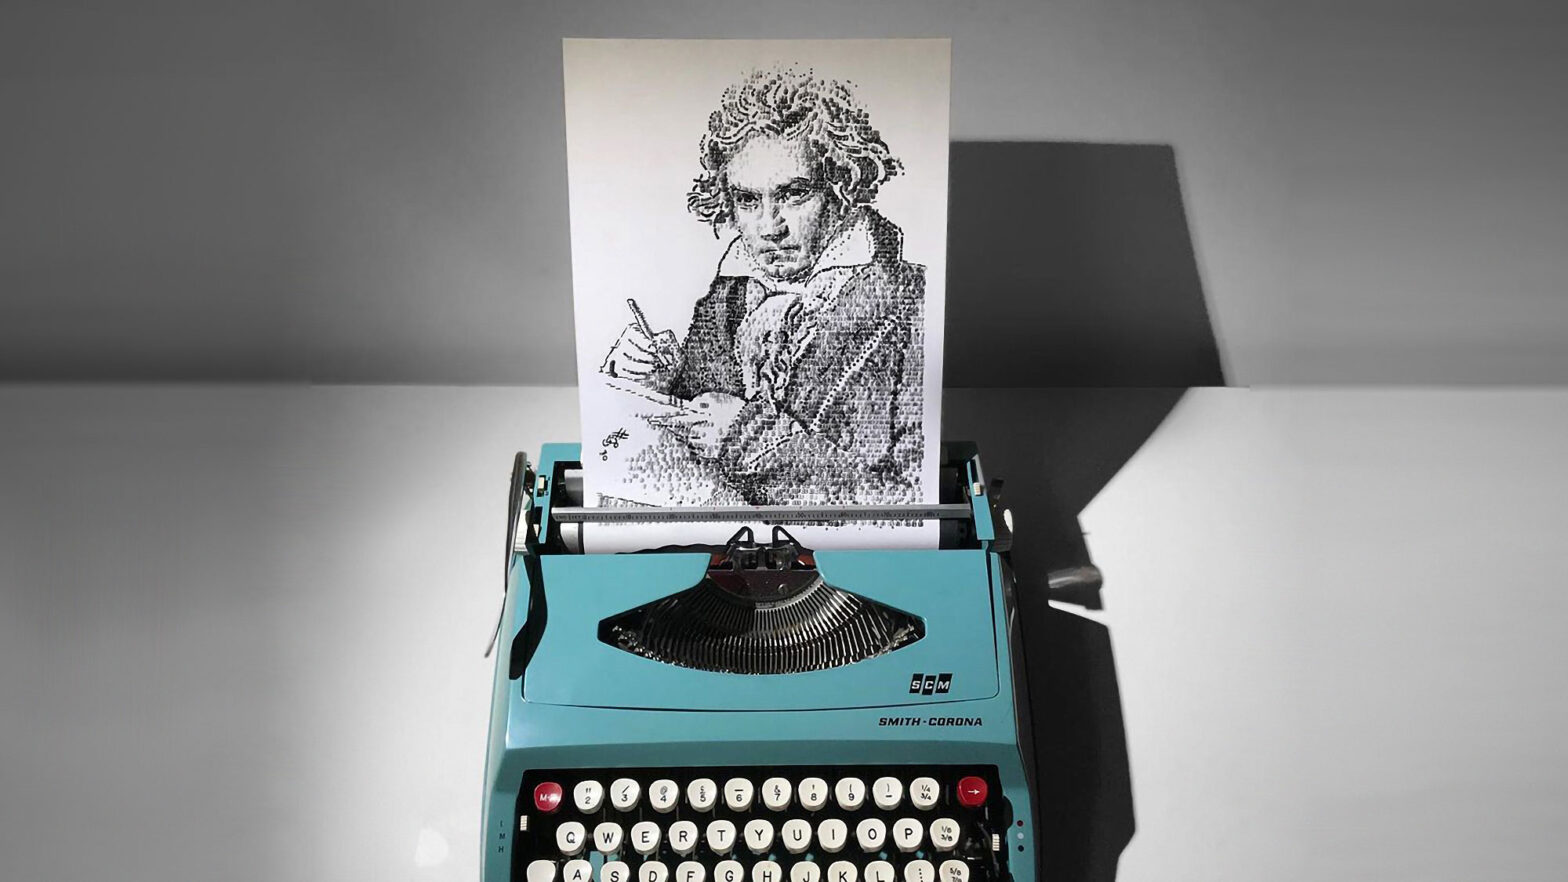 Artist Creates Illustrations Using Typewriter